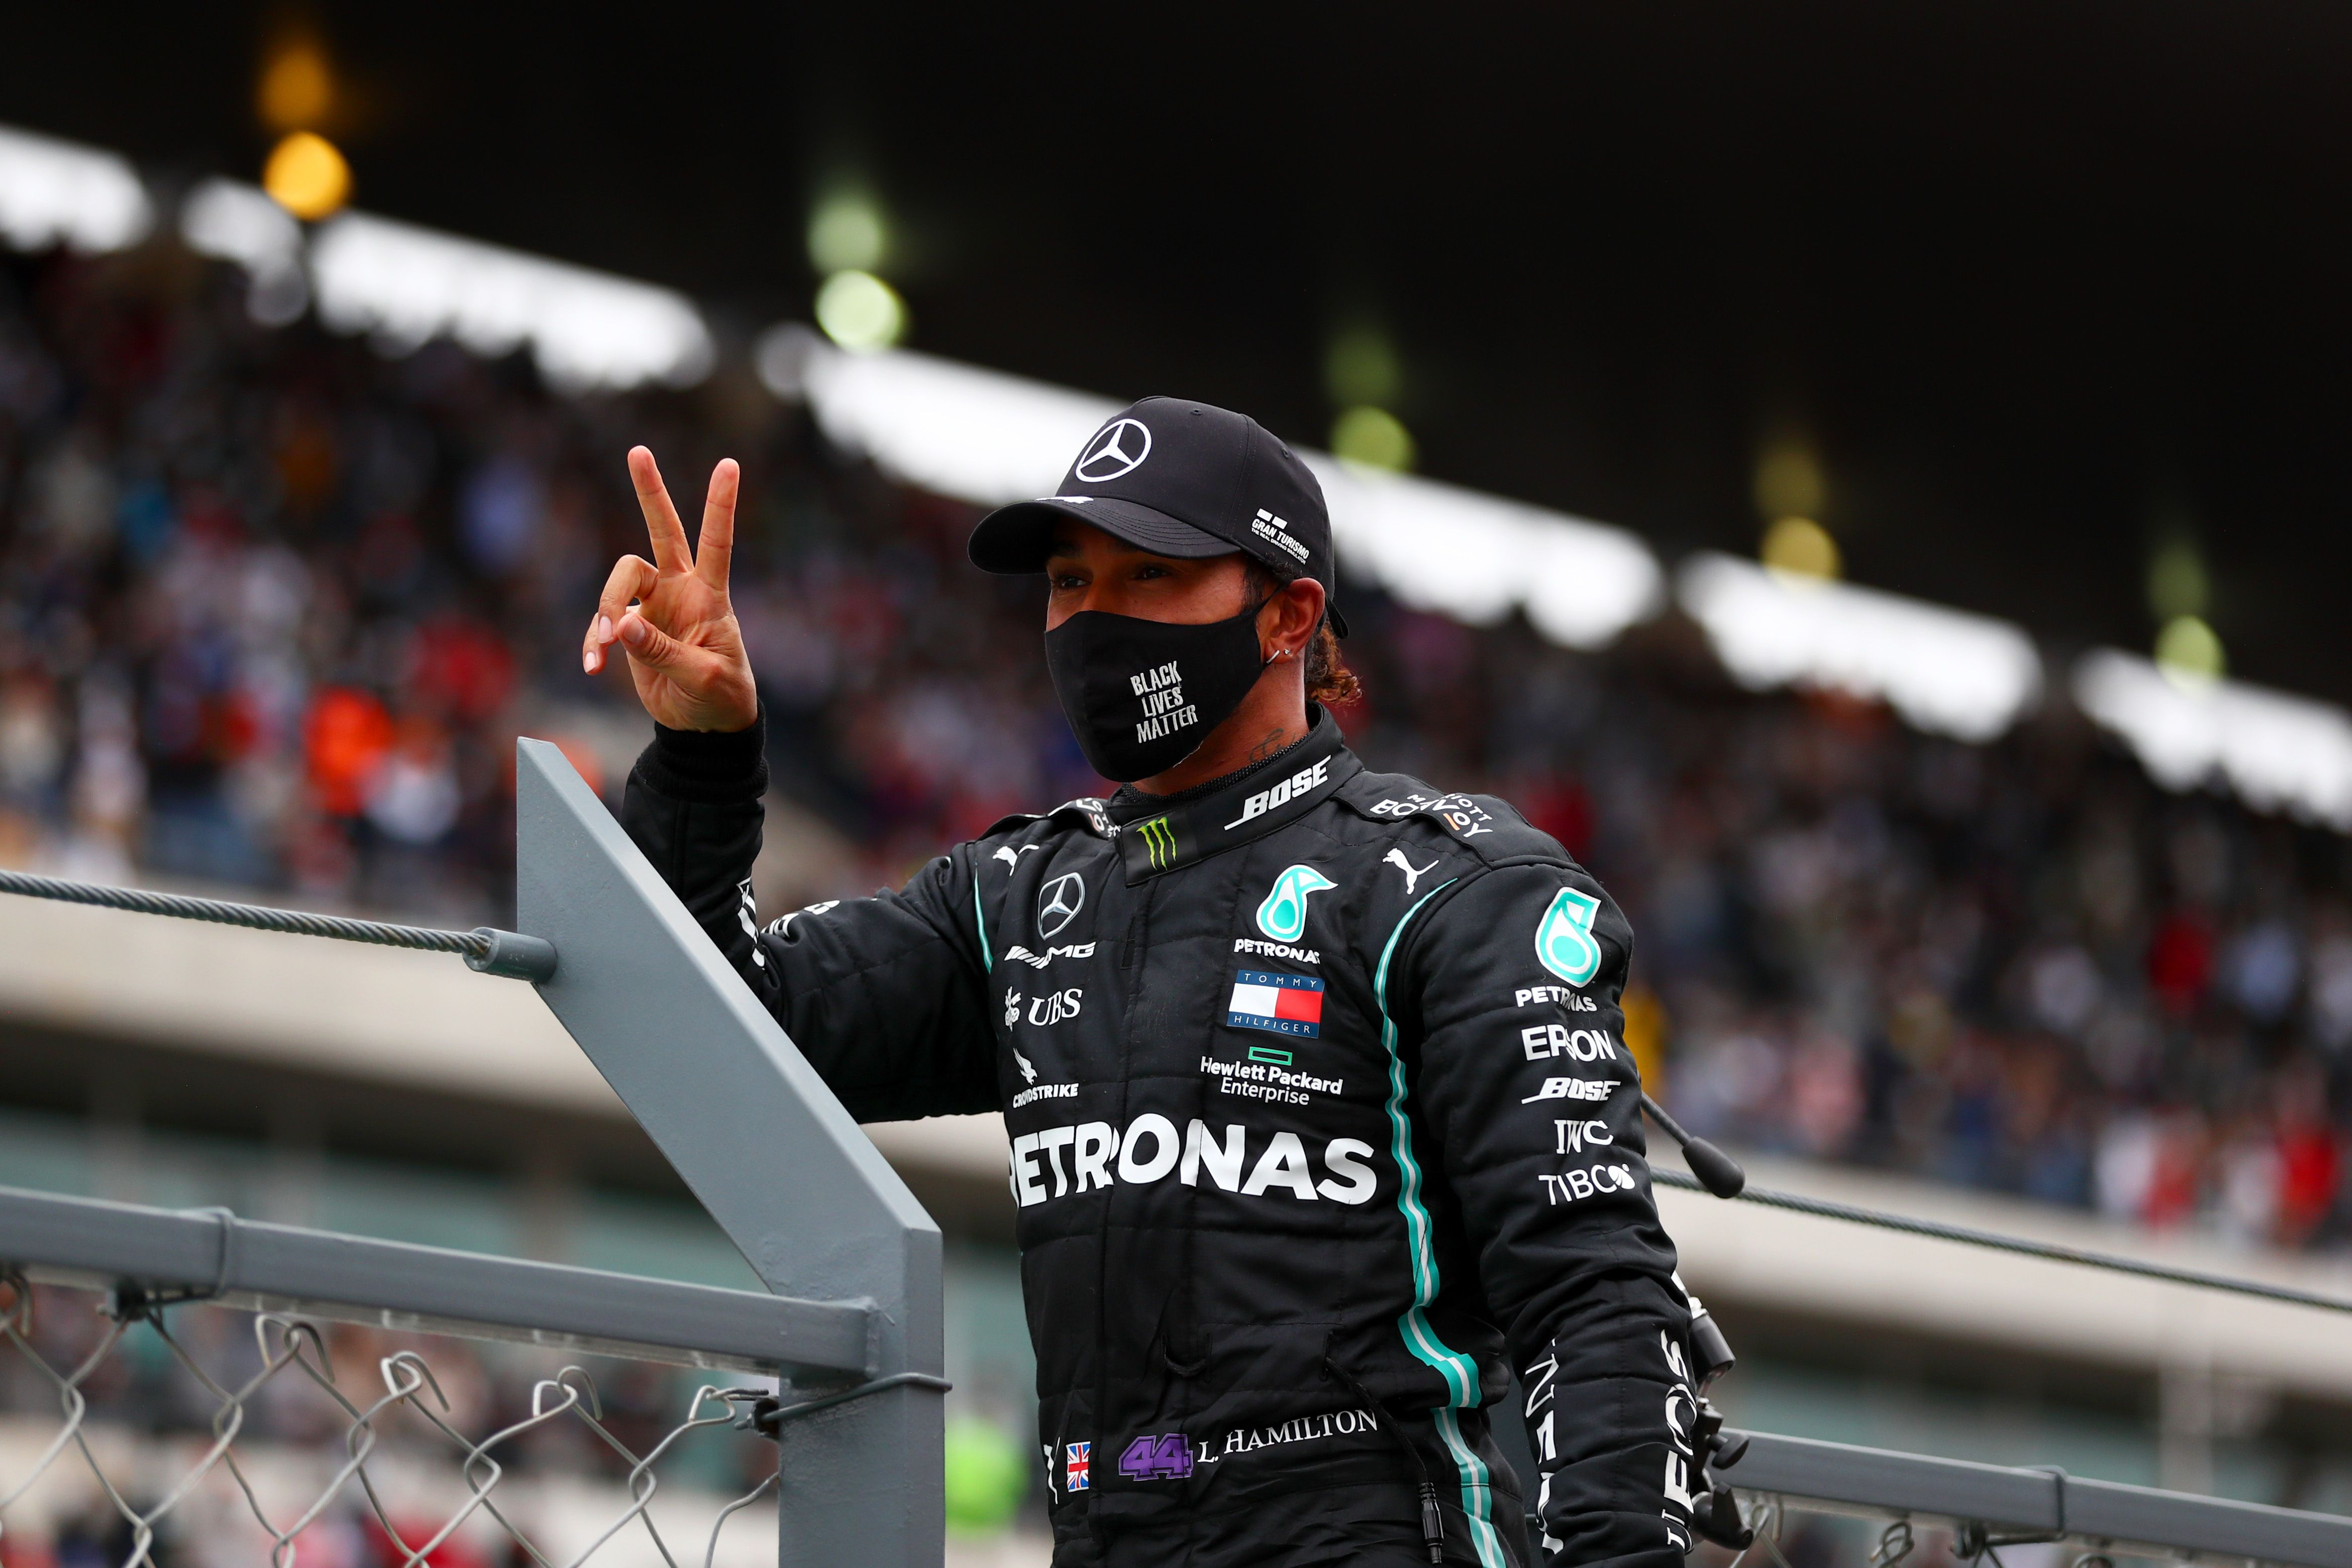 F1 Teams Vote for Salary Cap That Could Force Lewis Hamilton's Hand